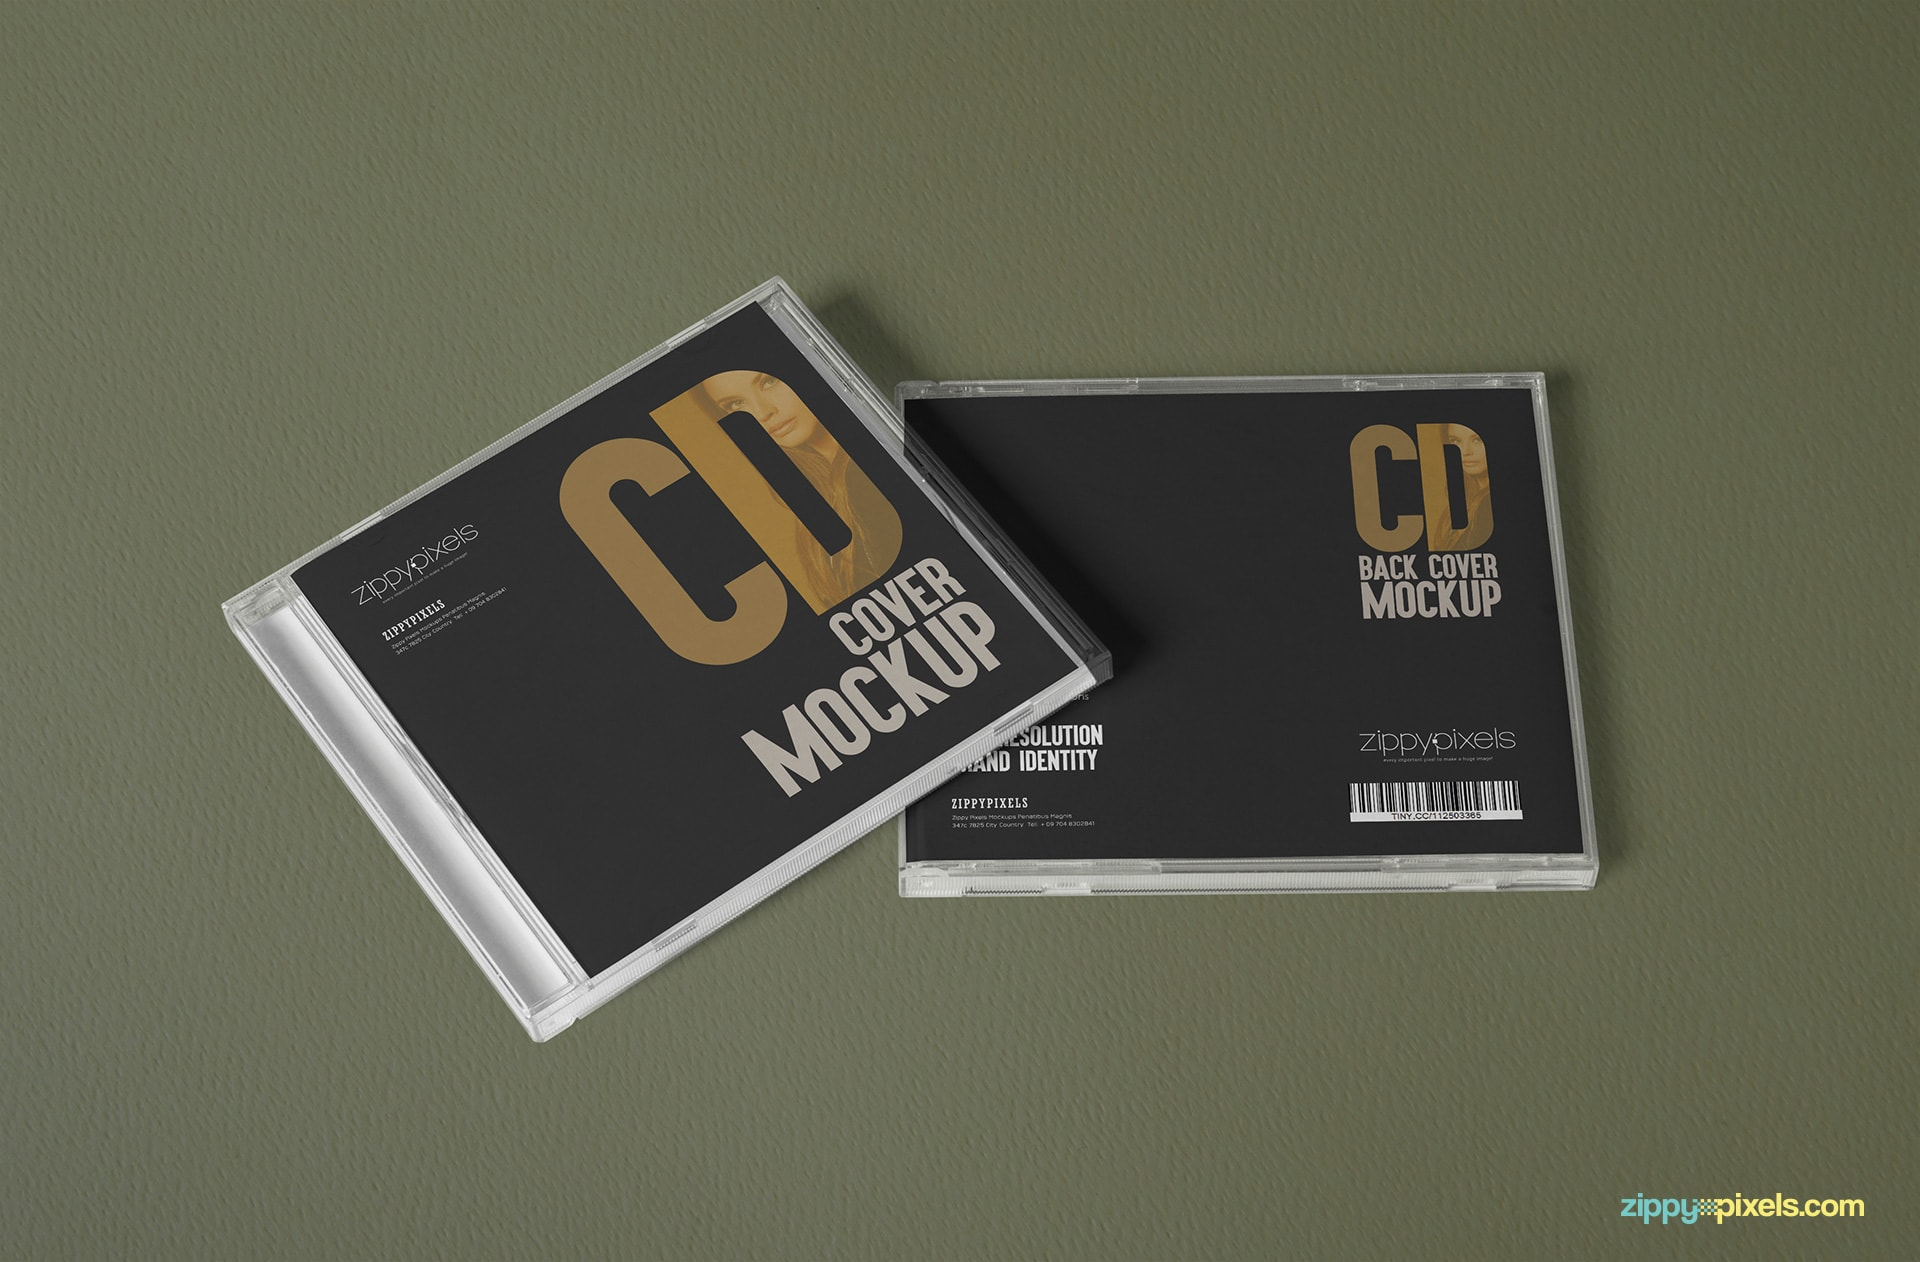 plastic-cd-jewel-case-mockup-front-back